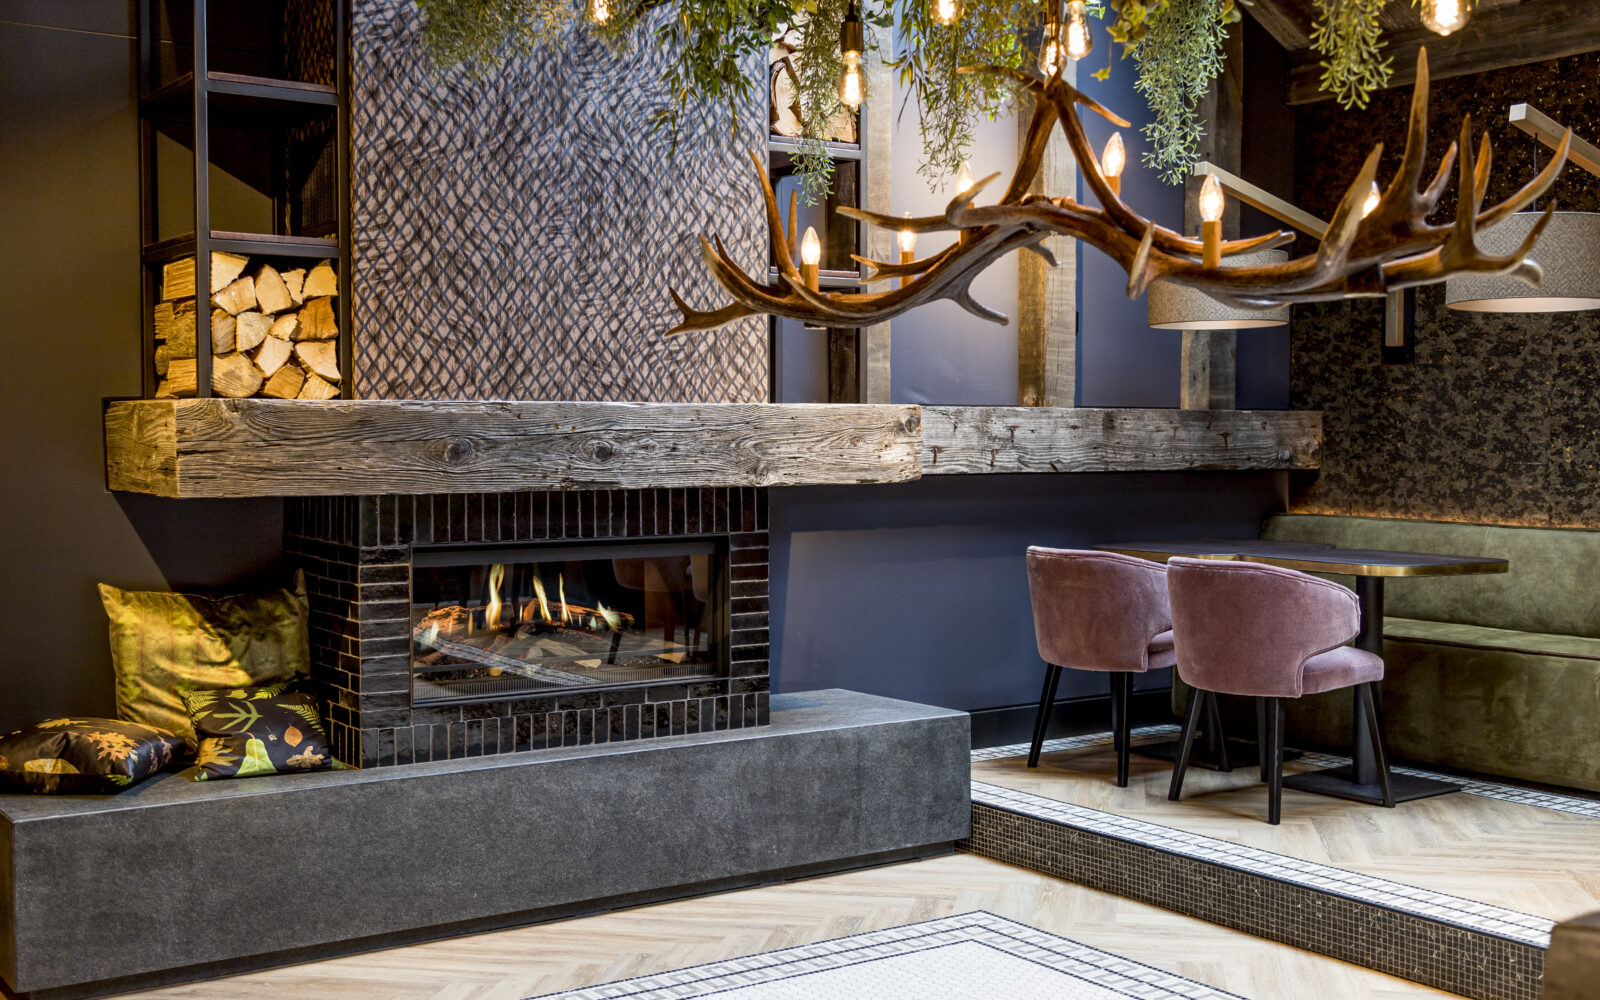 Home is where the hearth is – in the hospitality business